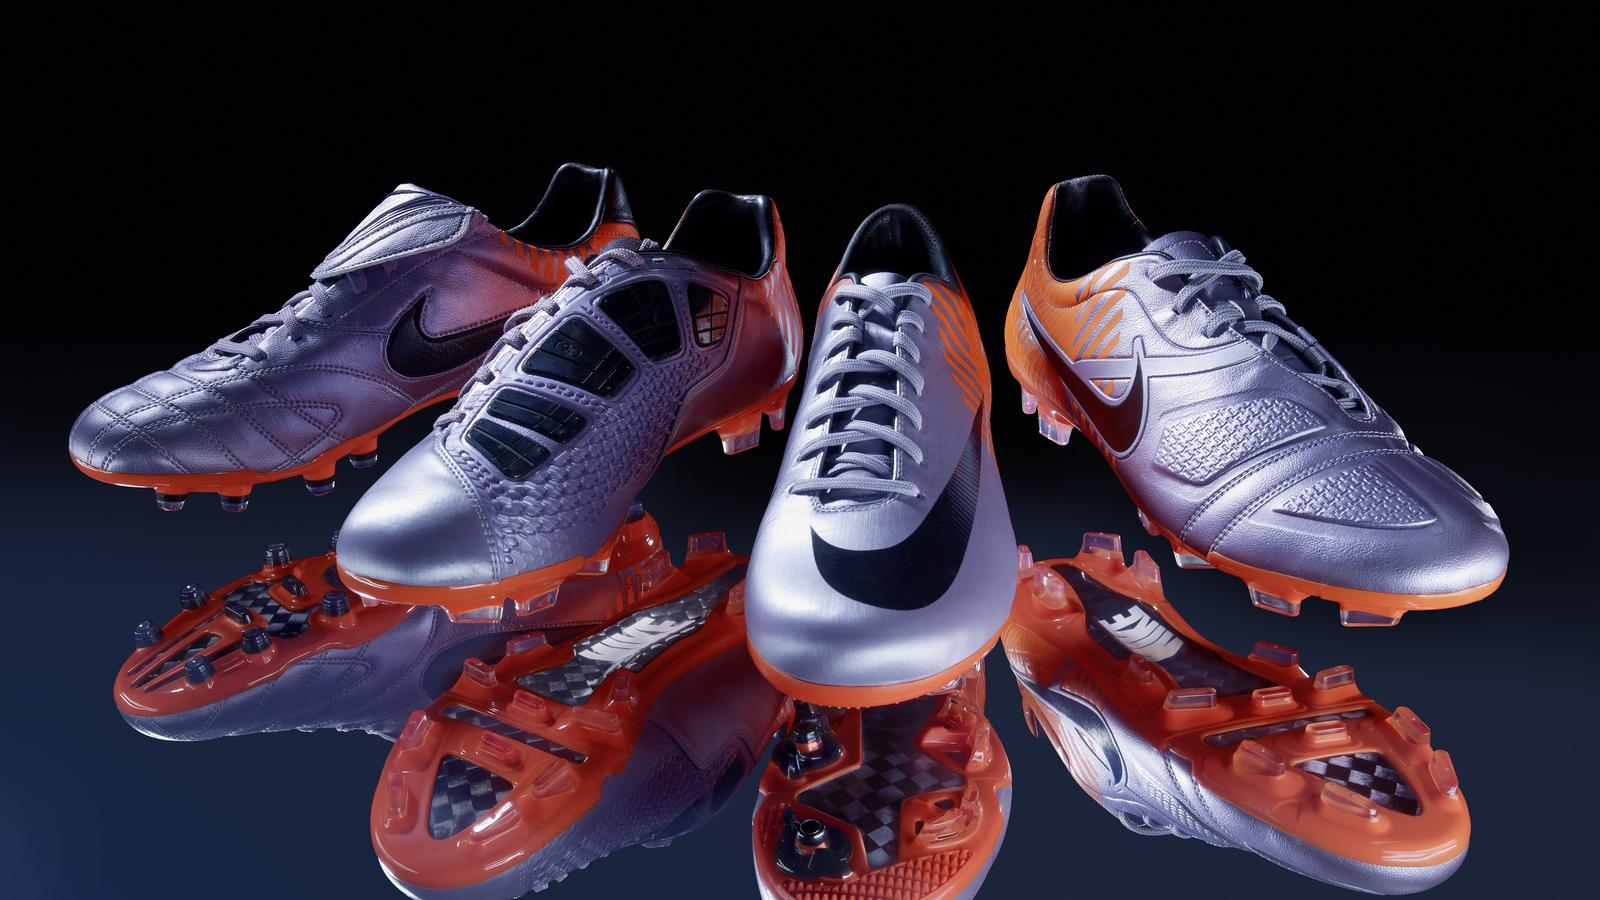 33e26041b Elite Series Football Boots Unveiled - Nike News